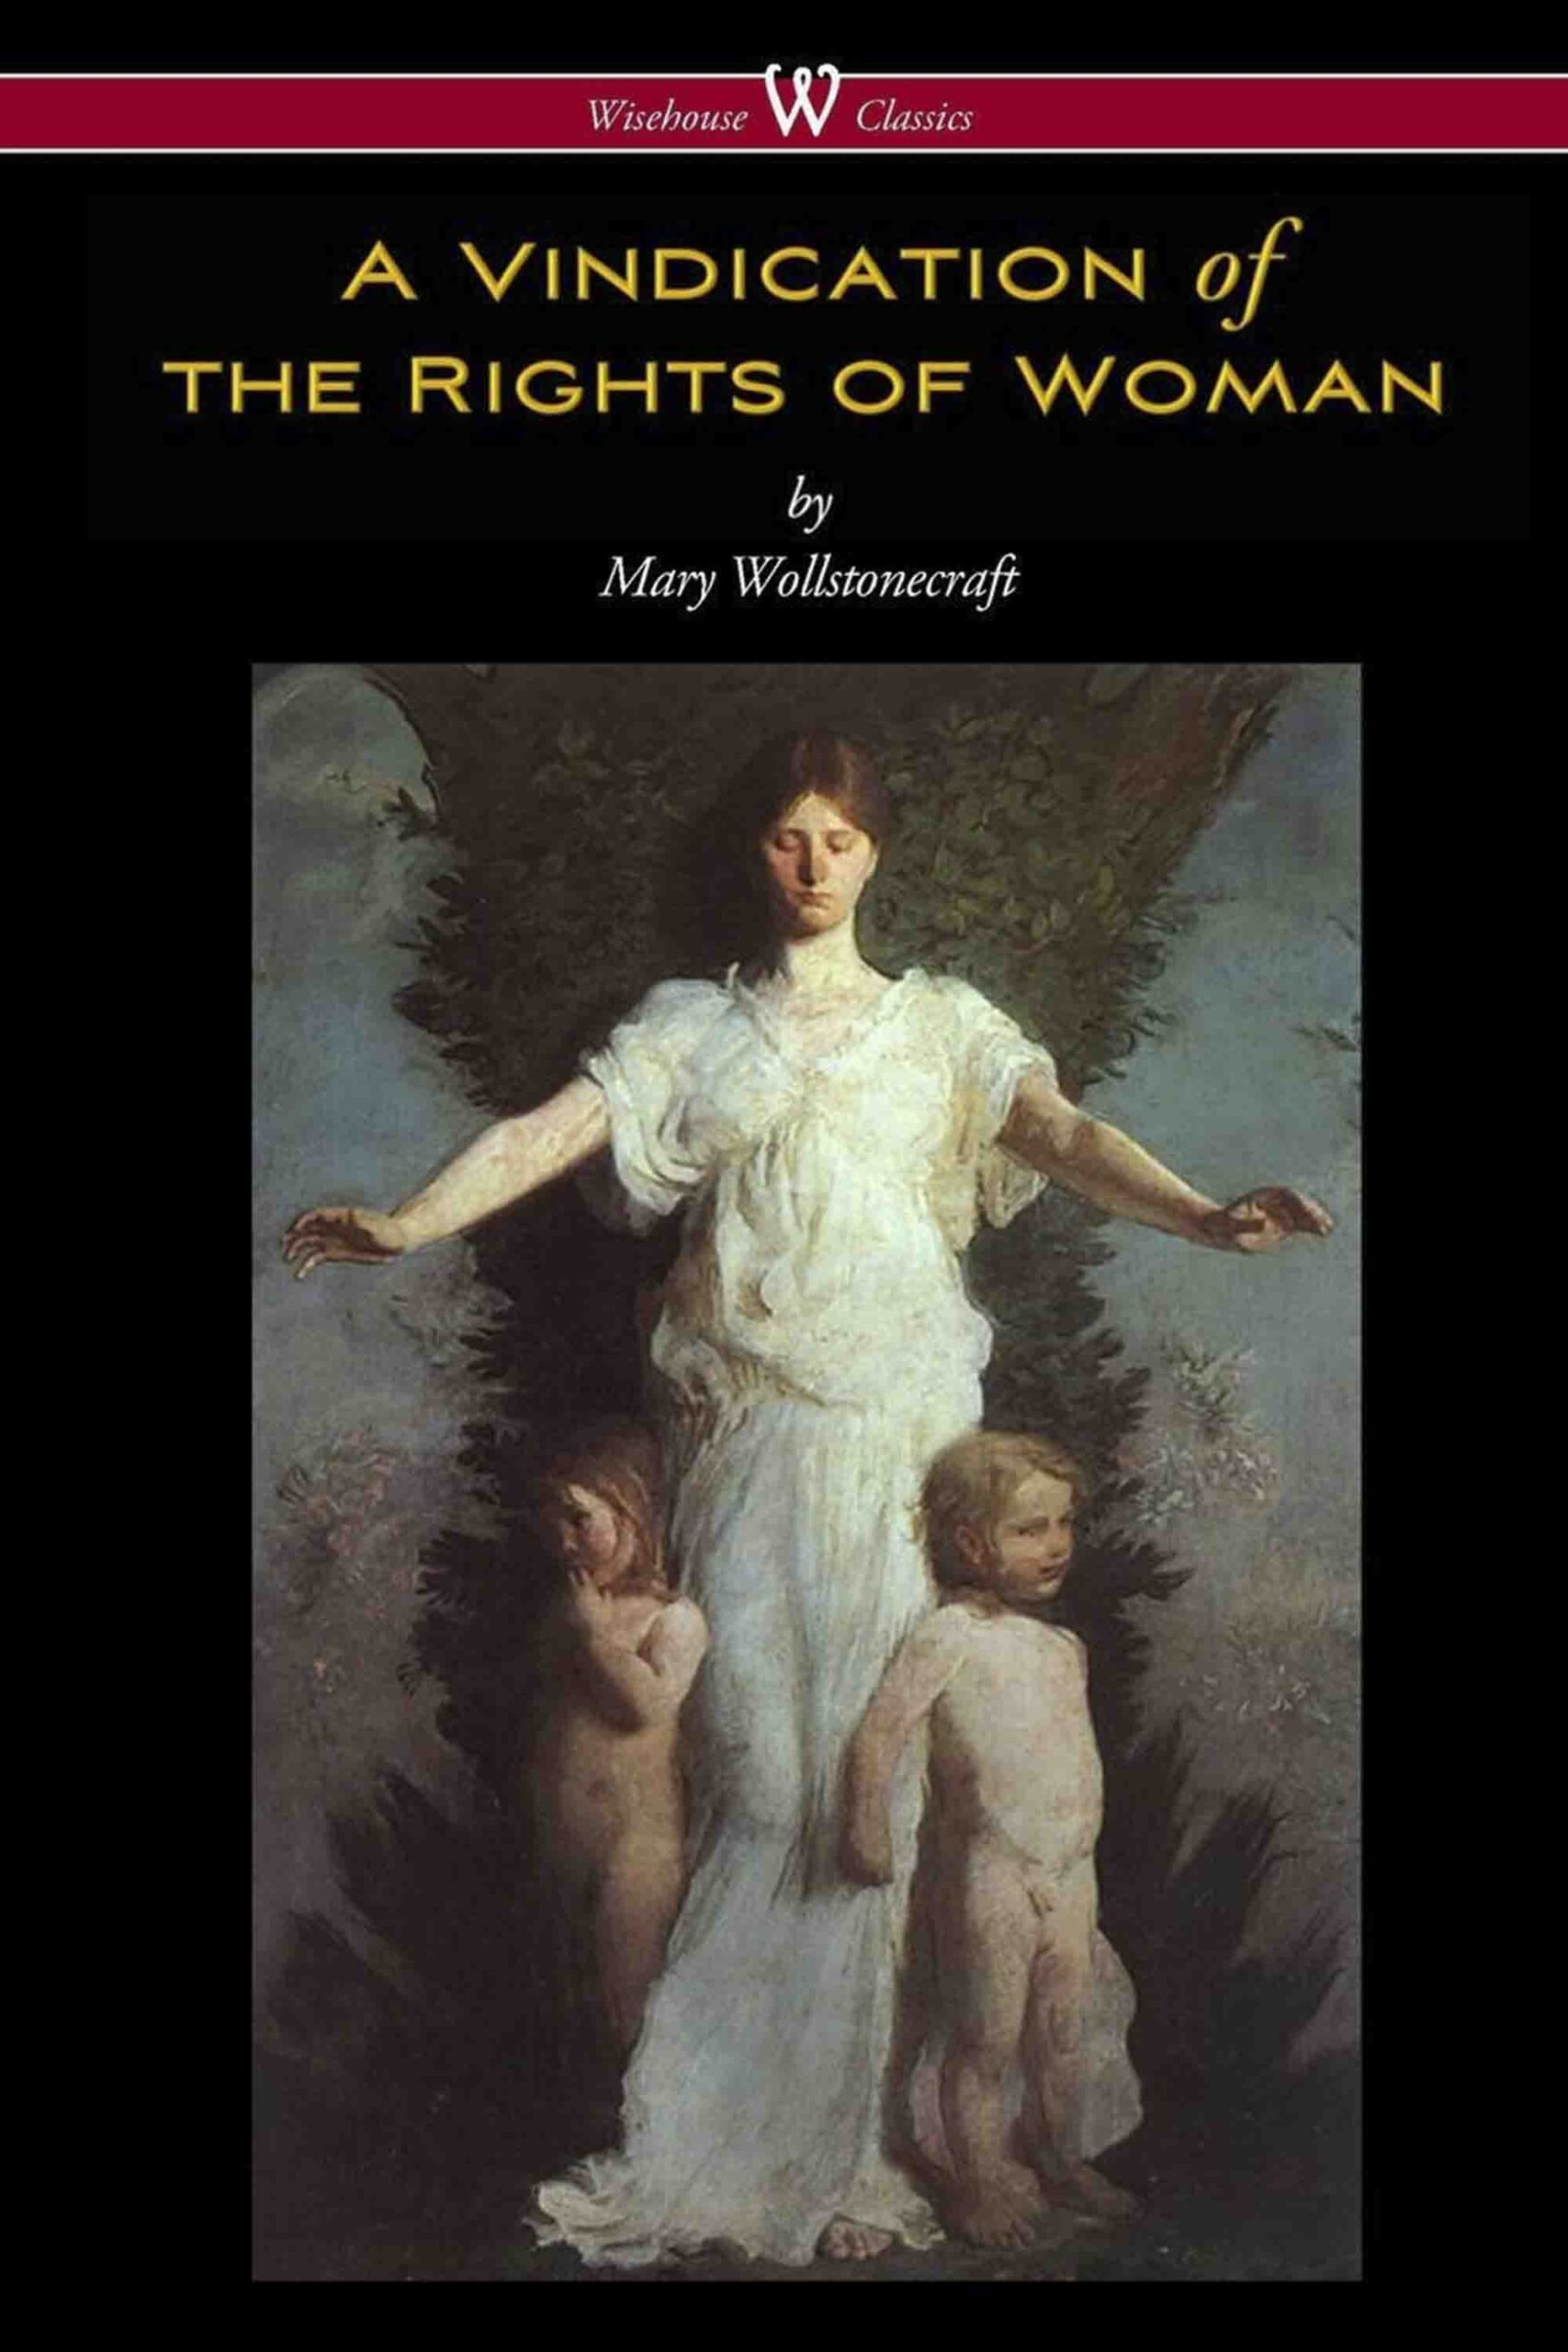 A Vindication of the Rights of Woman (Wisehouse Classics – Original 1792 Edition)